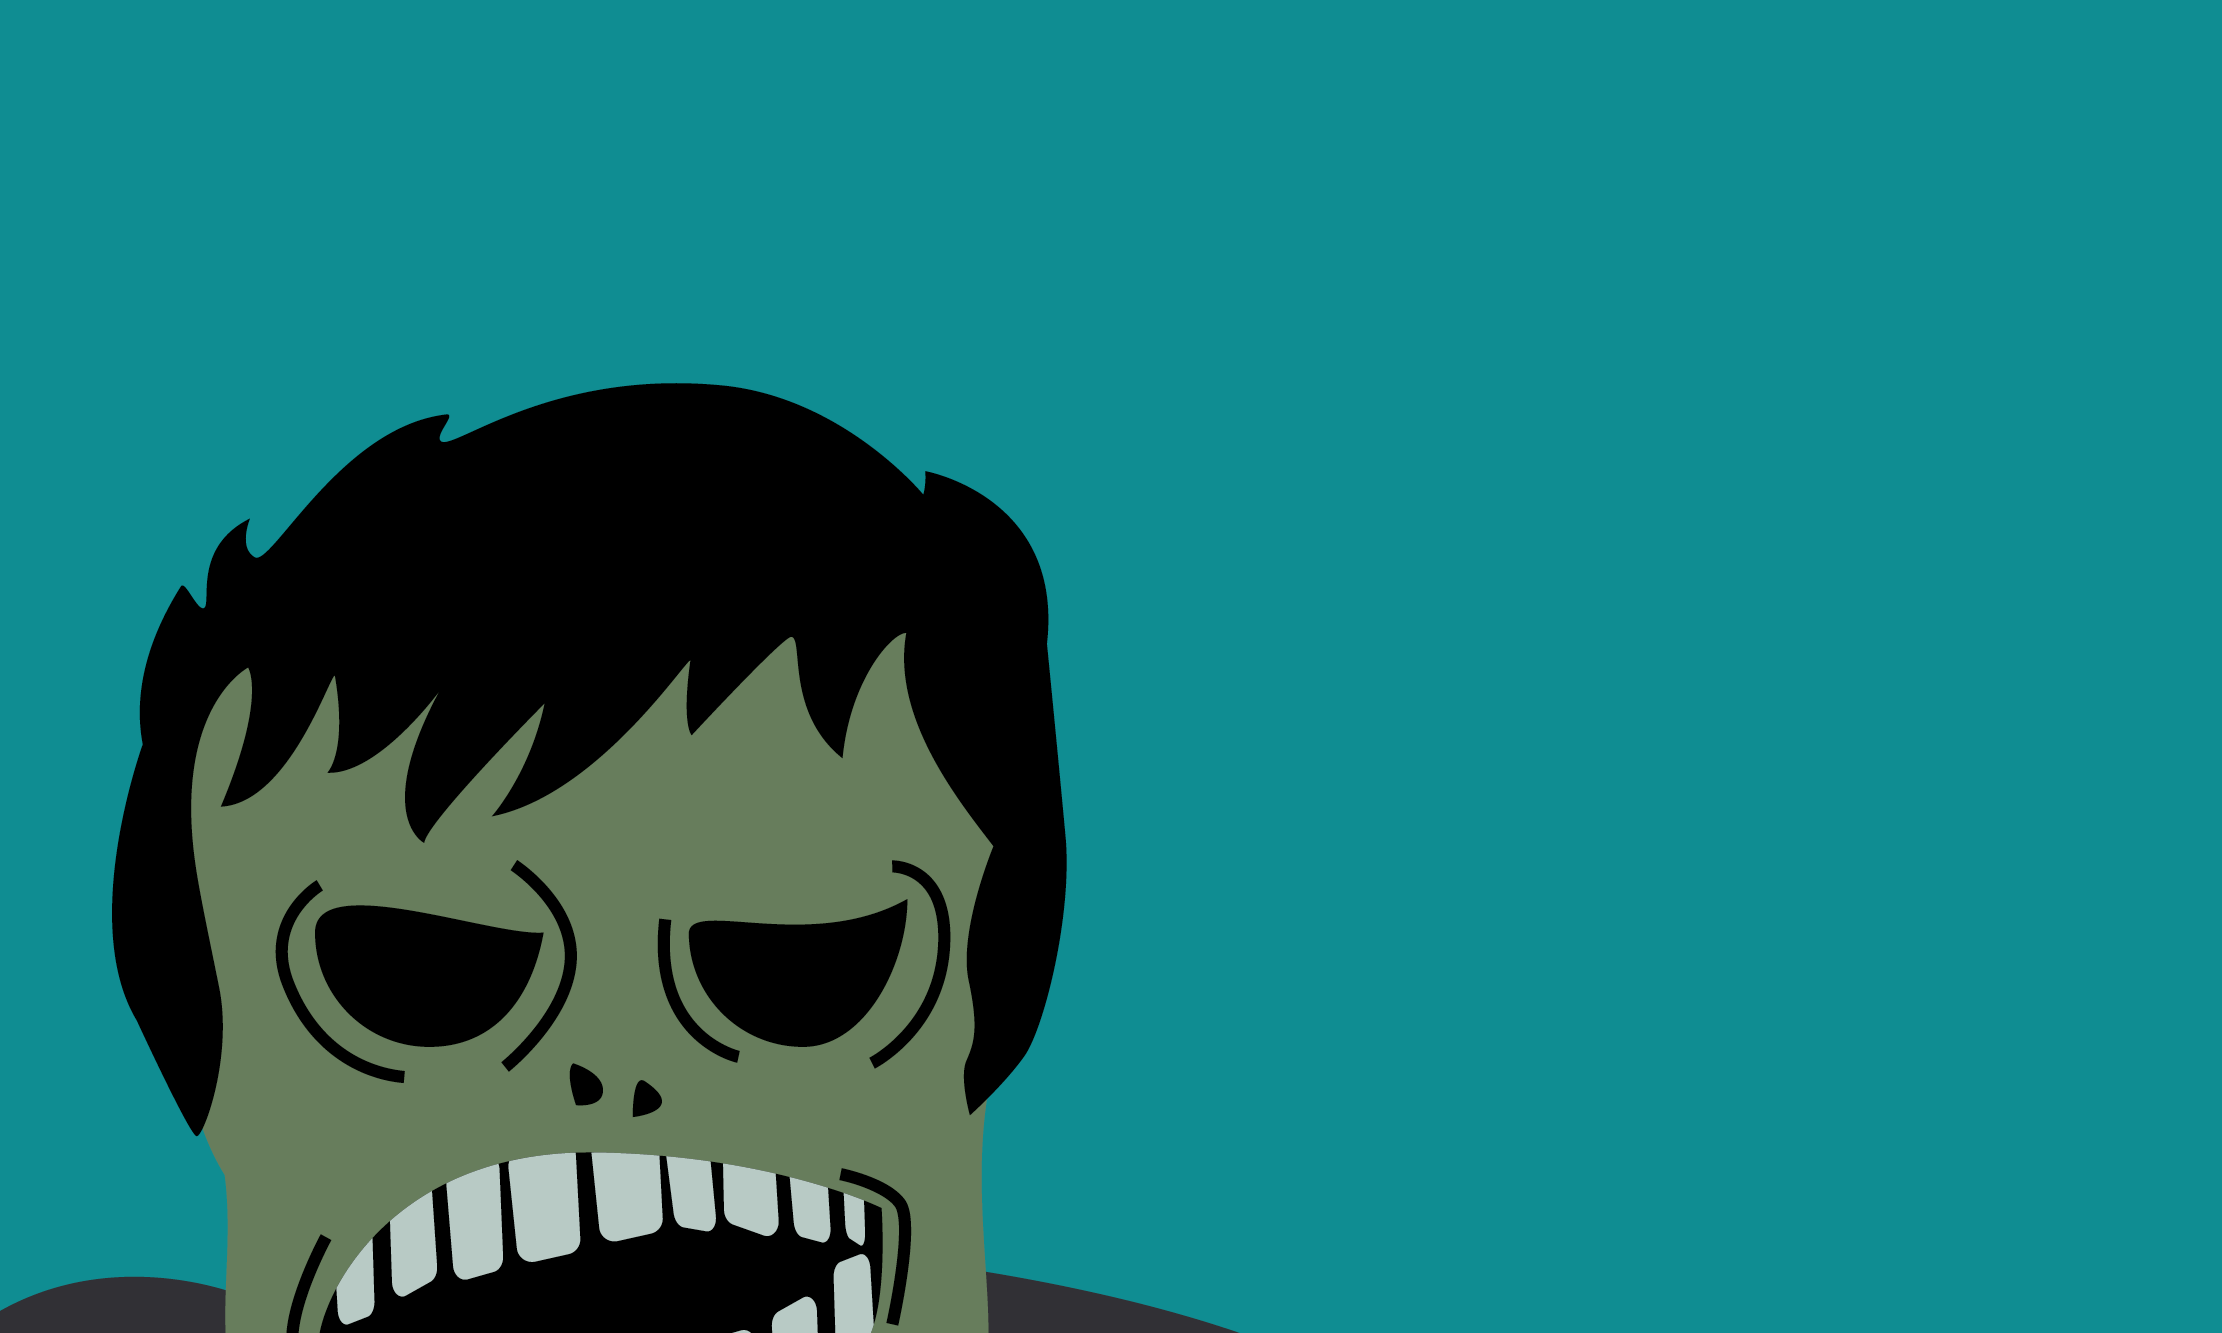 Want to know if your compliance program is operational? Let the zombie apocalypse be your guide.